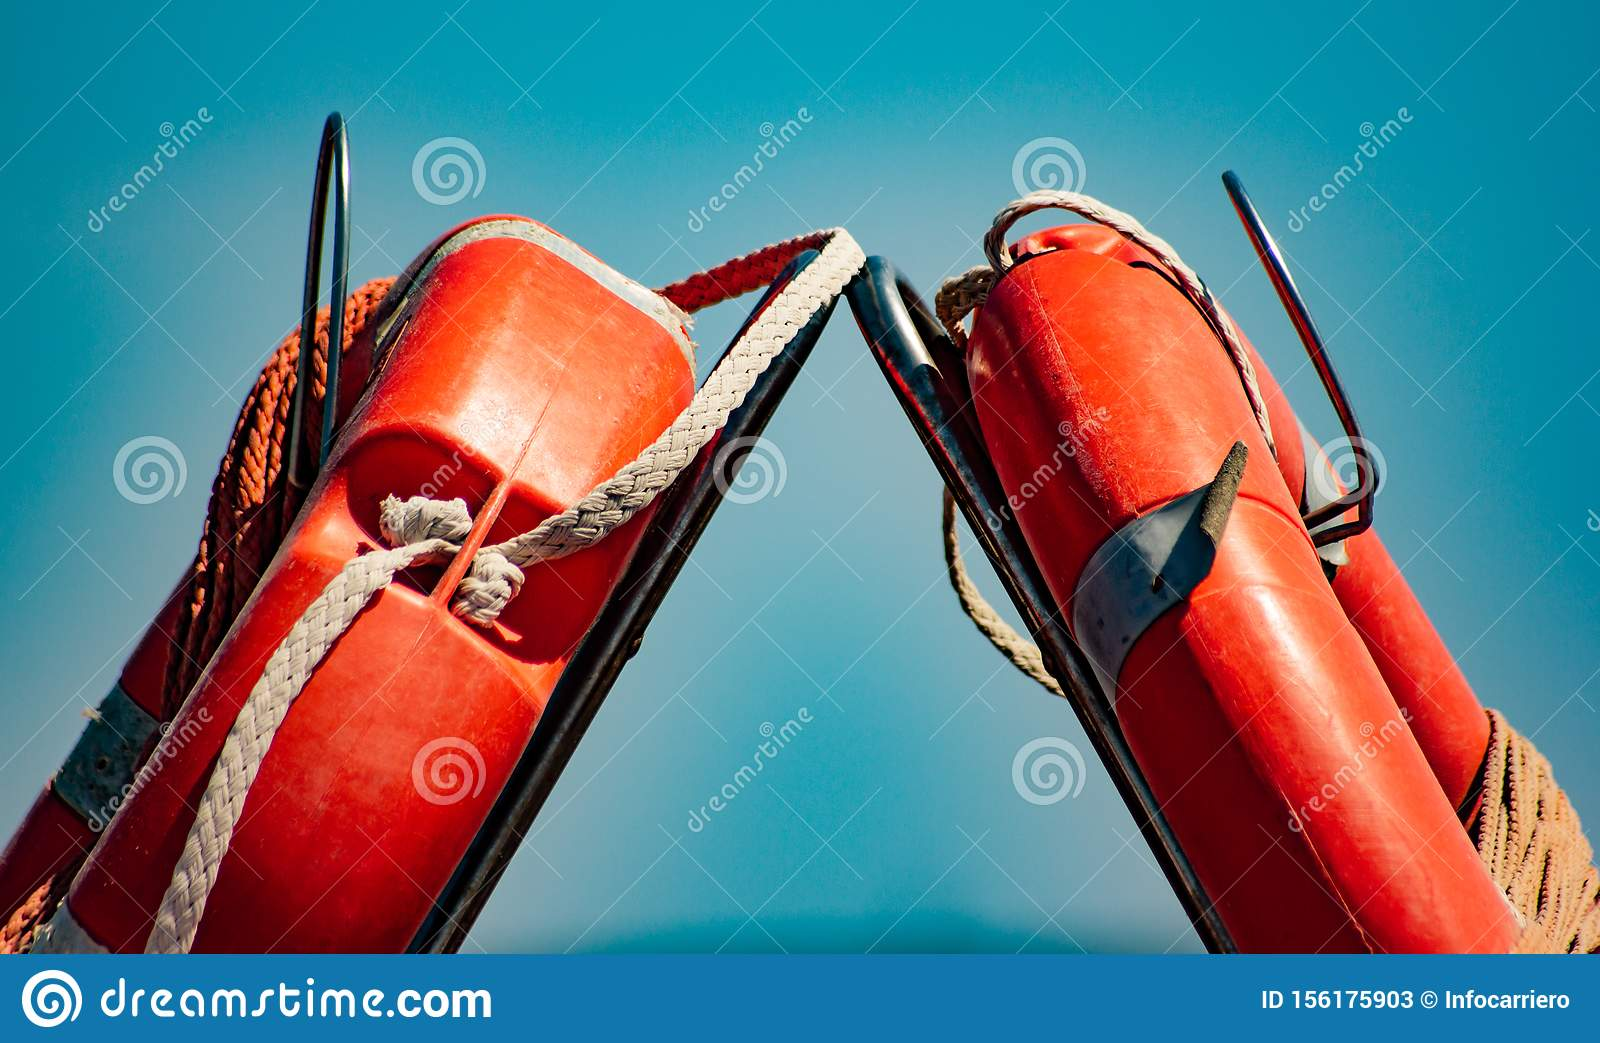 Detail of life jackets used in boats or lifeguards to save lives.